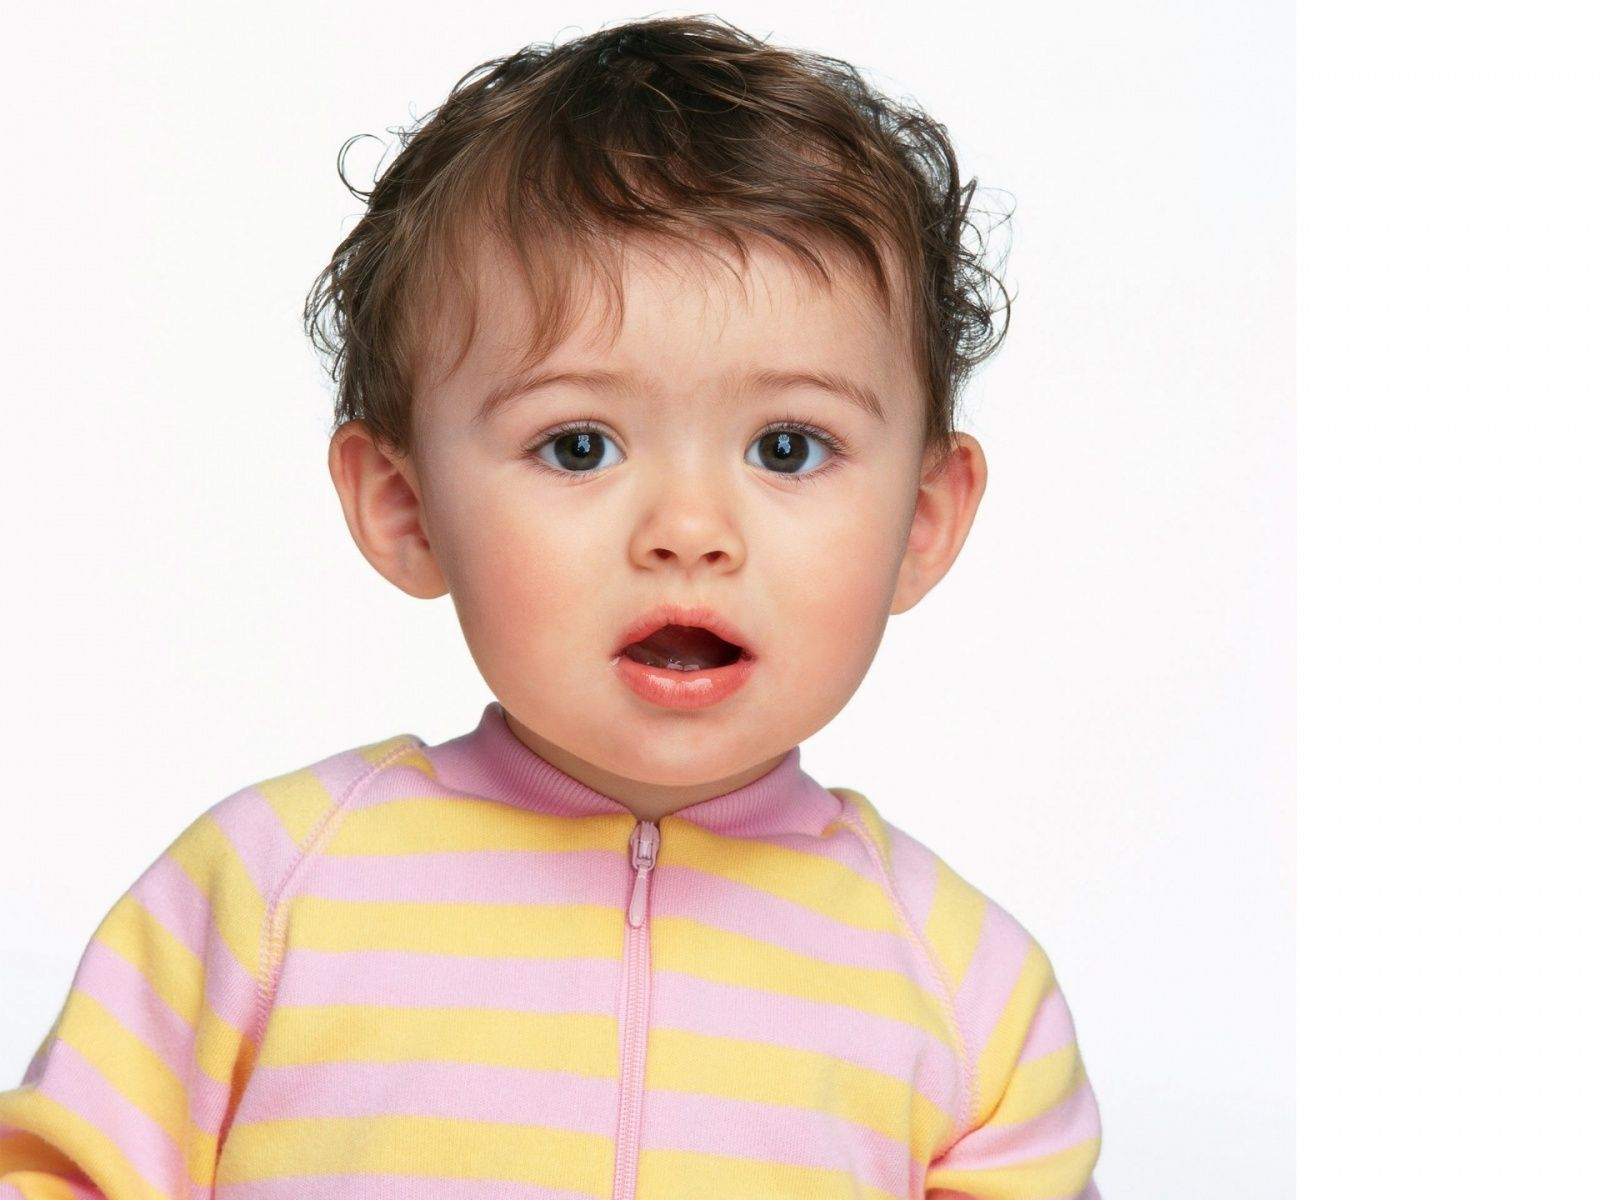 Cute baby wallpapers for desktop free download group hd cute baby wallpapers for desktop free download group voltagebd Image collections